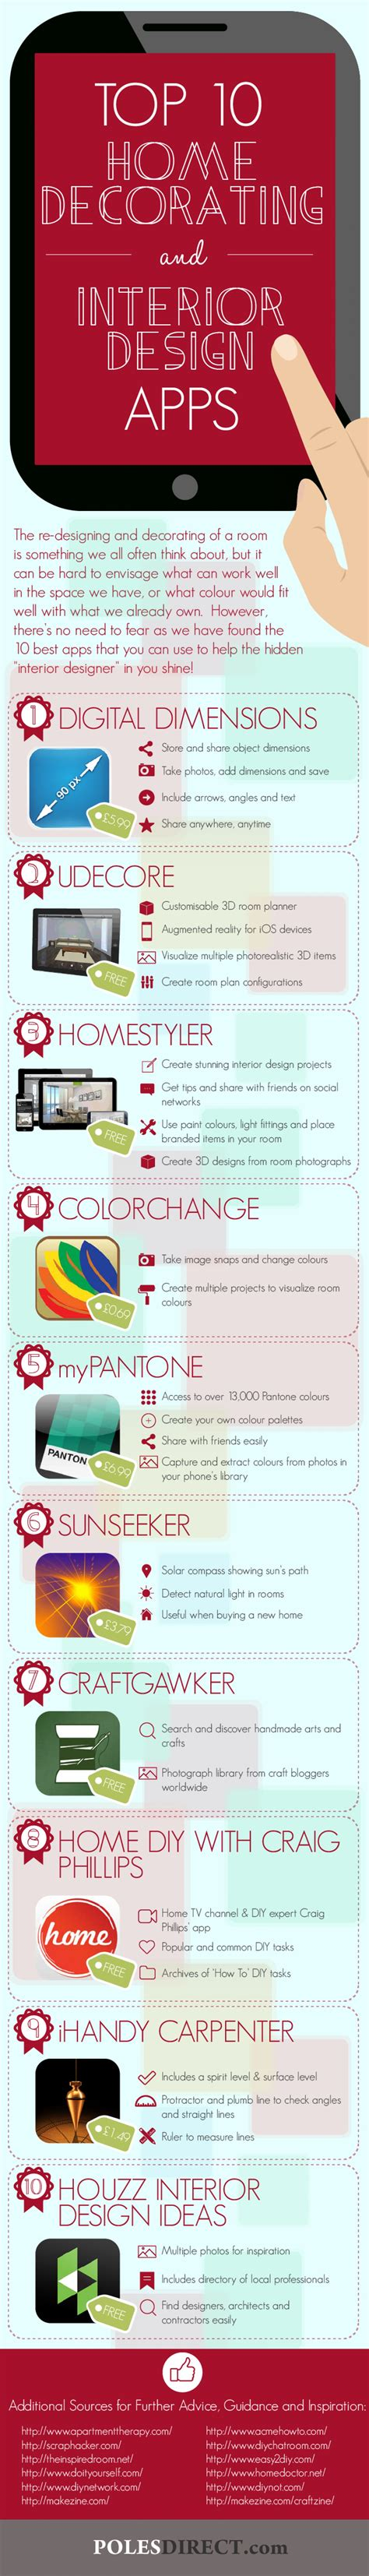 home decor infographic 10 must have home decorating and interior design apps